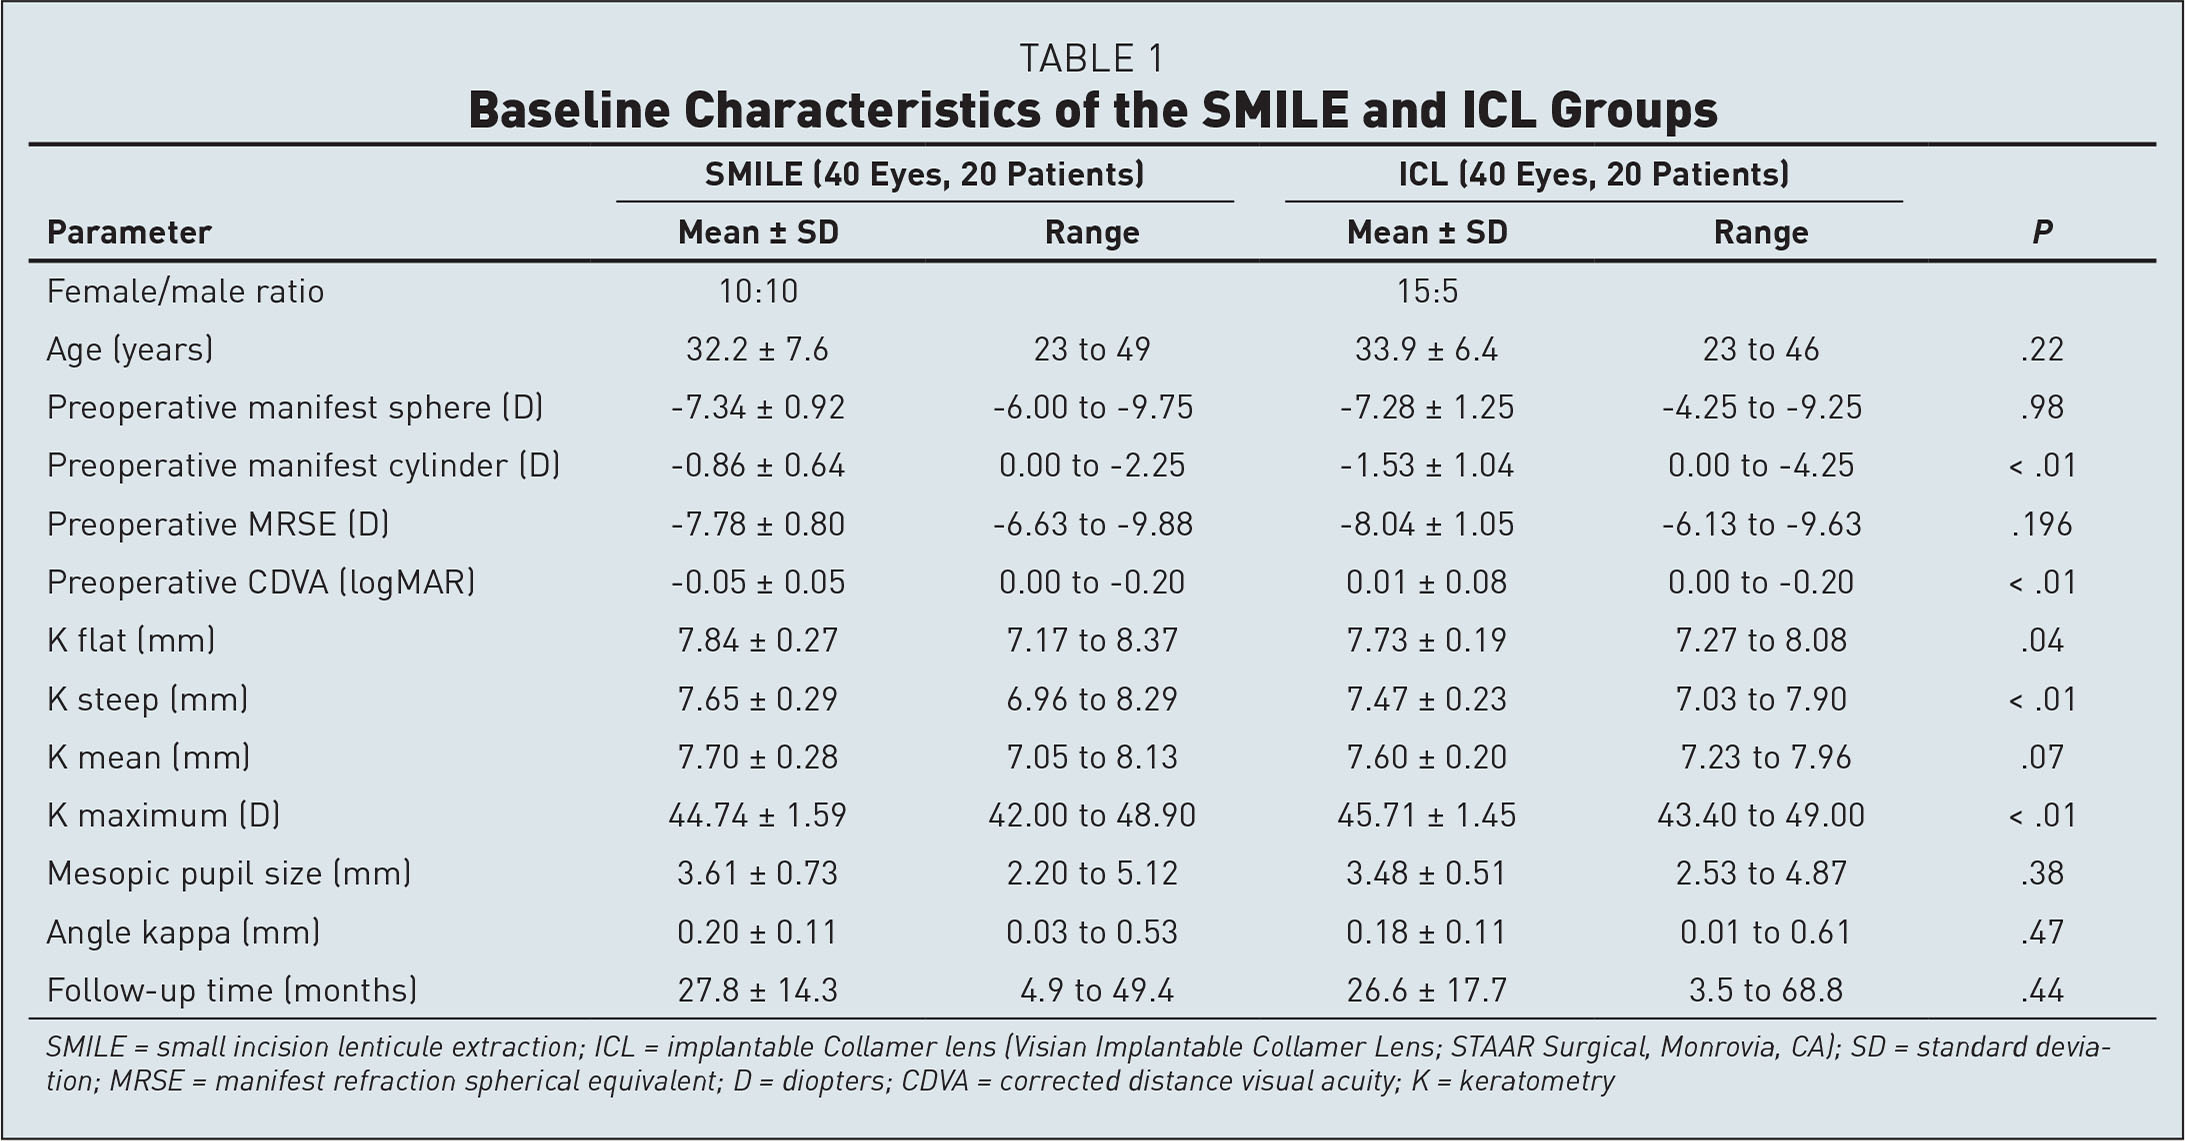 Baseline Characteristics of the SMILE and ICL Groups